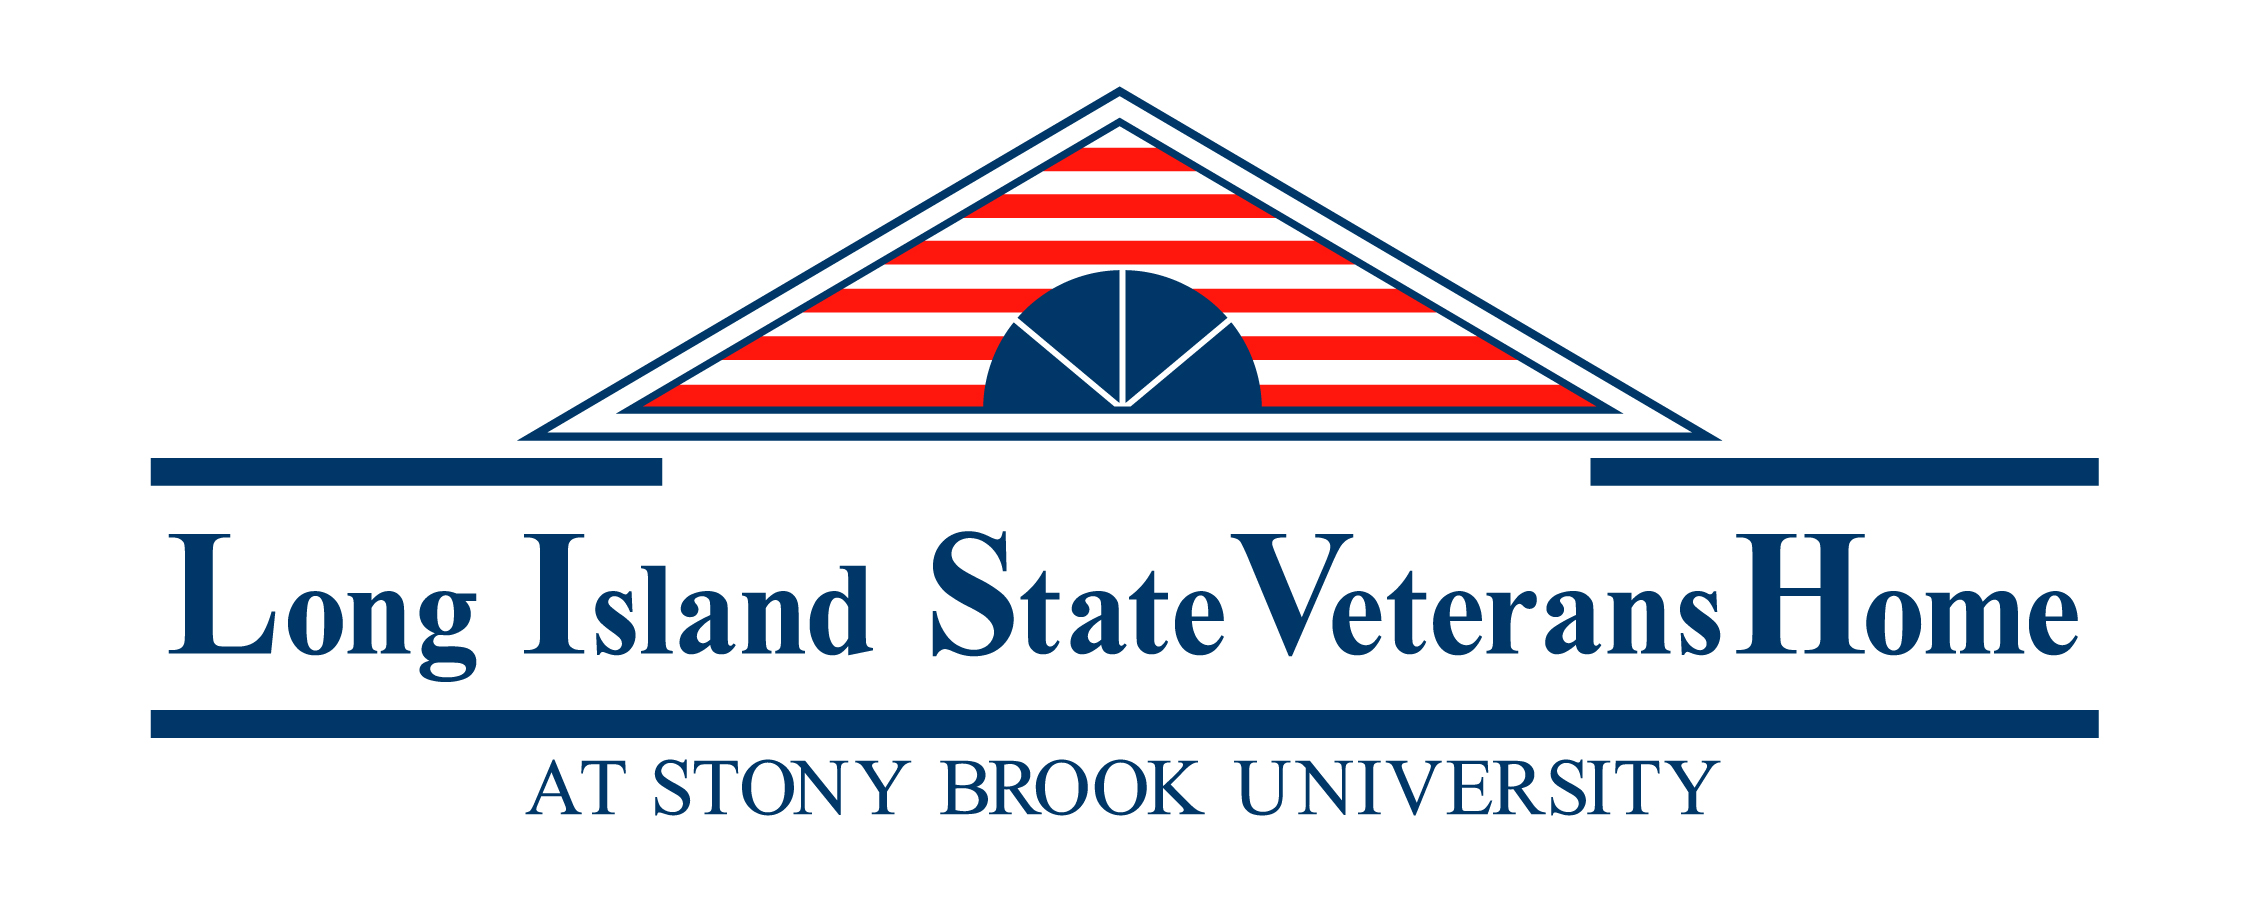 Long Island State Veterans Home Fundraiser Buy Tickets In